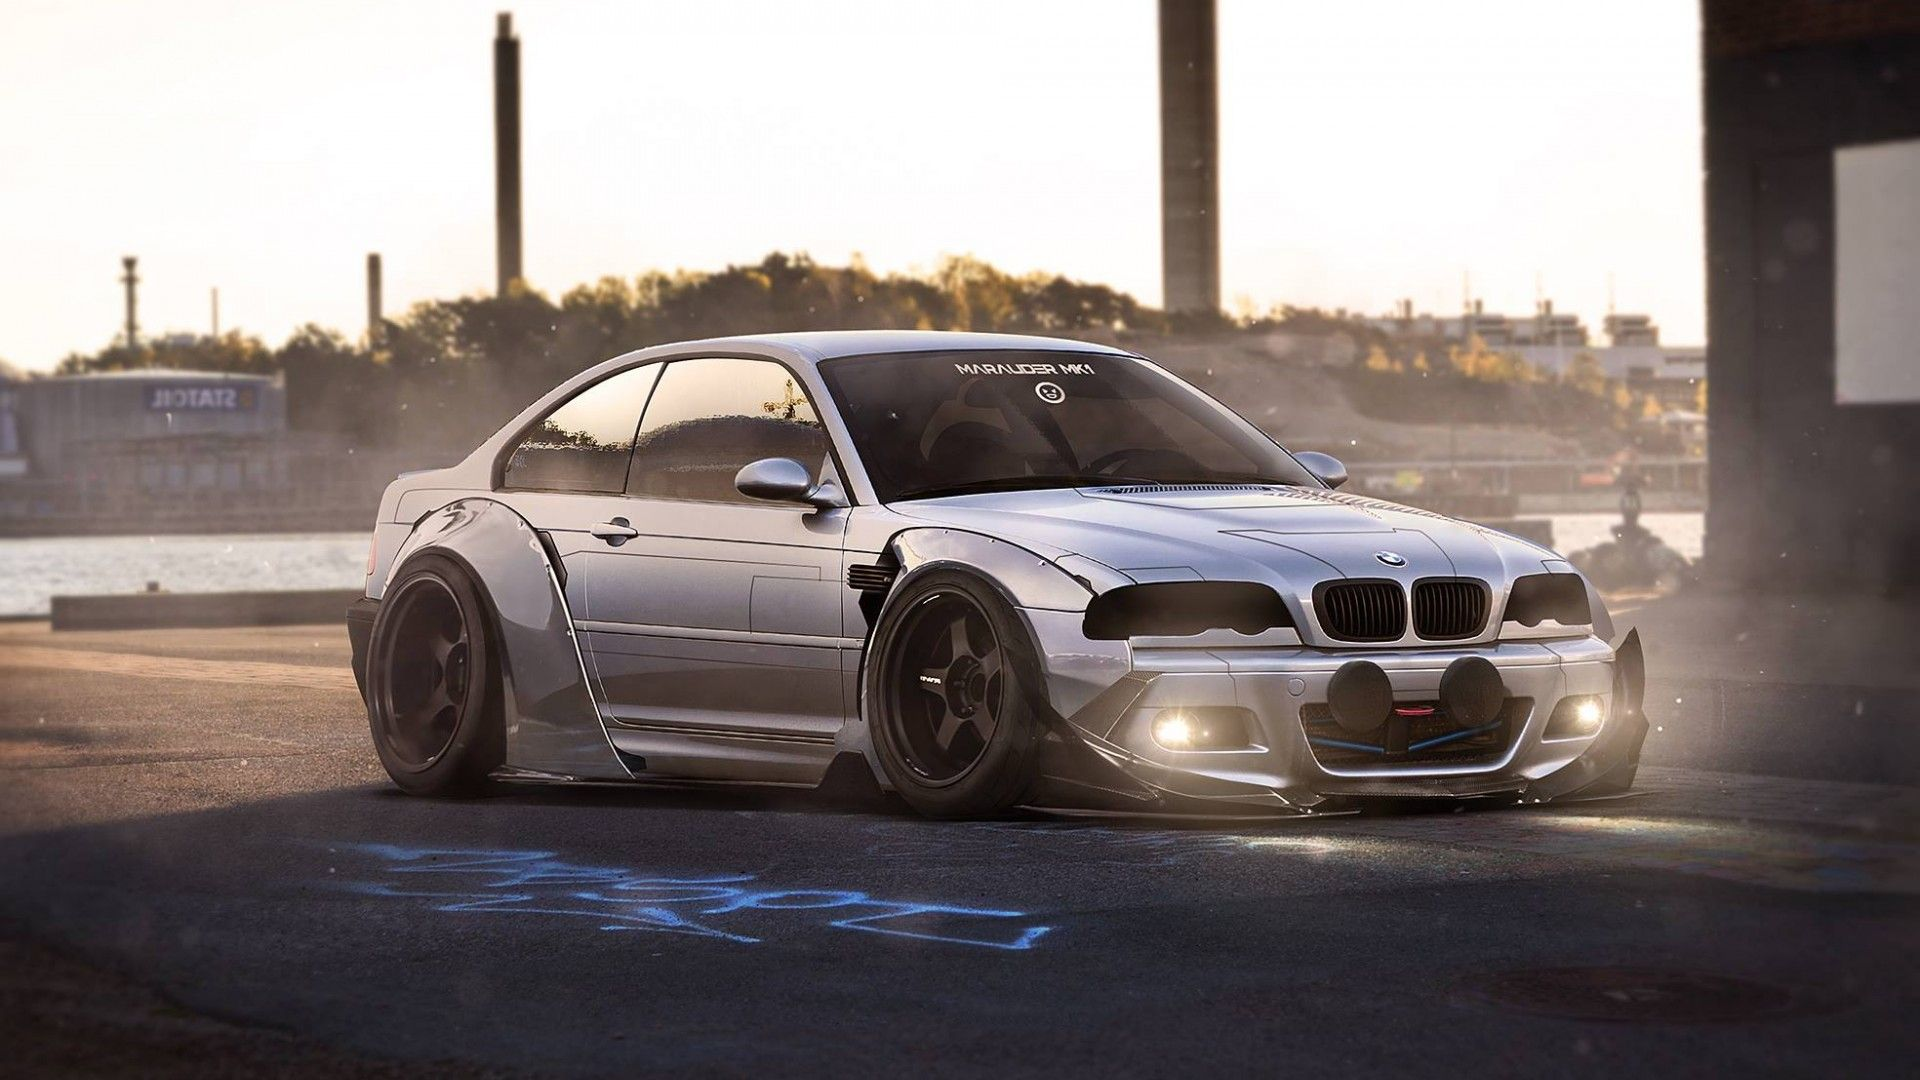 Download Wallpaper Bmw M3 E46 Ligth Body Kit Future Tuning Bmw Resolution 1920x1080